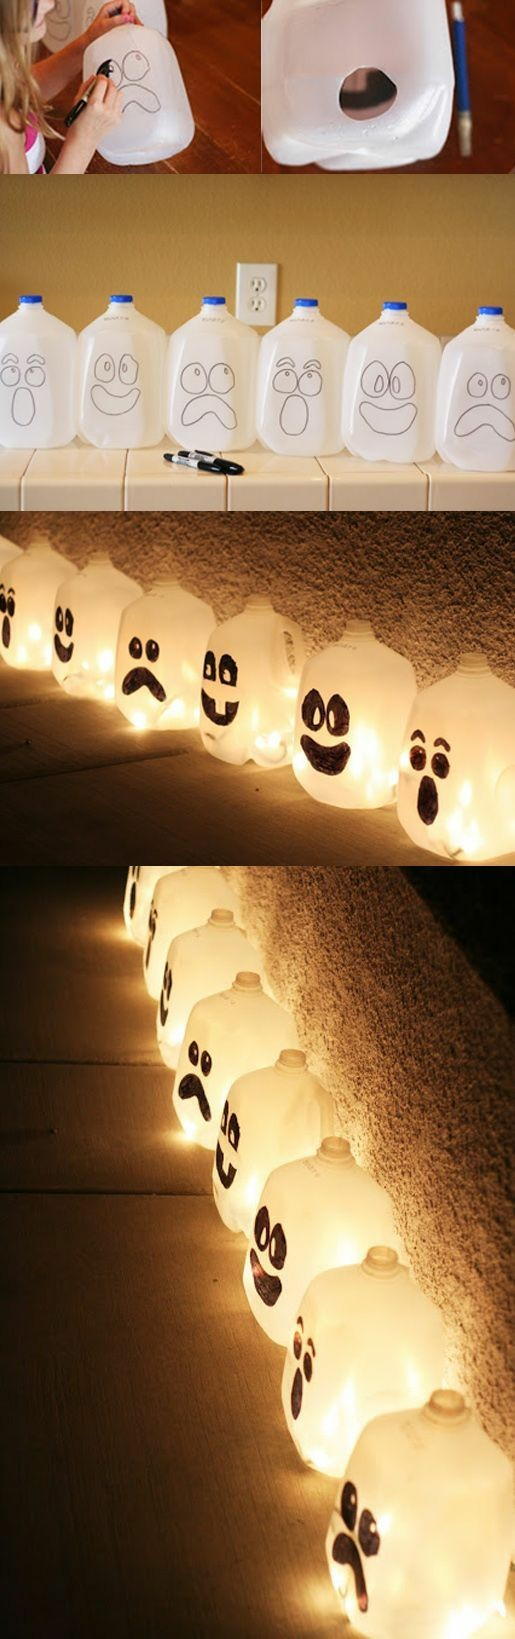 Diy halloween decor, Diy milk jug, gallon, milk jug, DIY, pumpkins - do it yourself halloween decorations